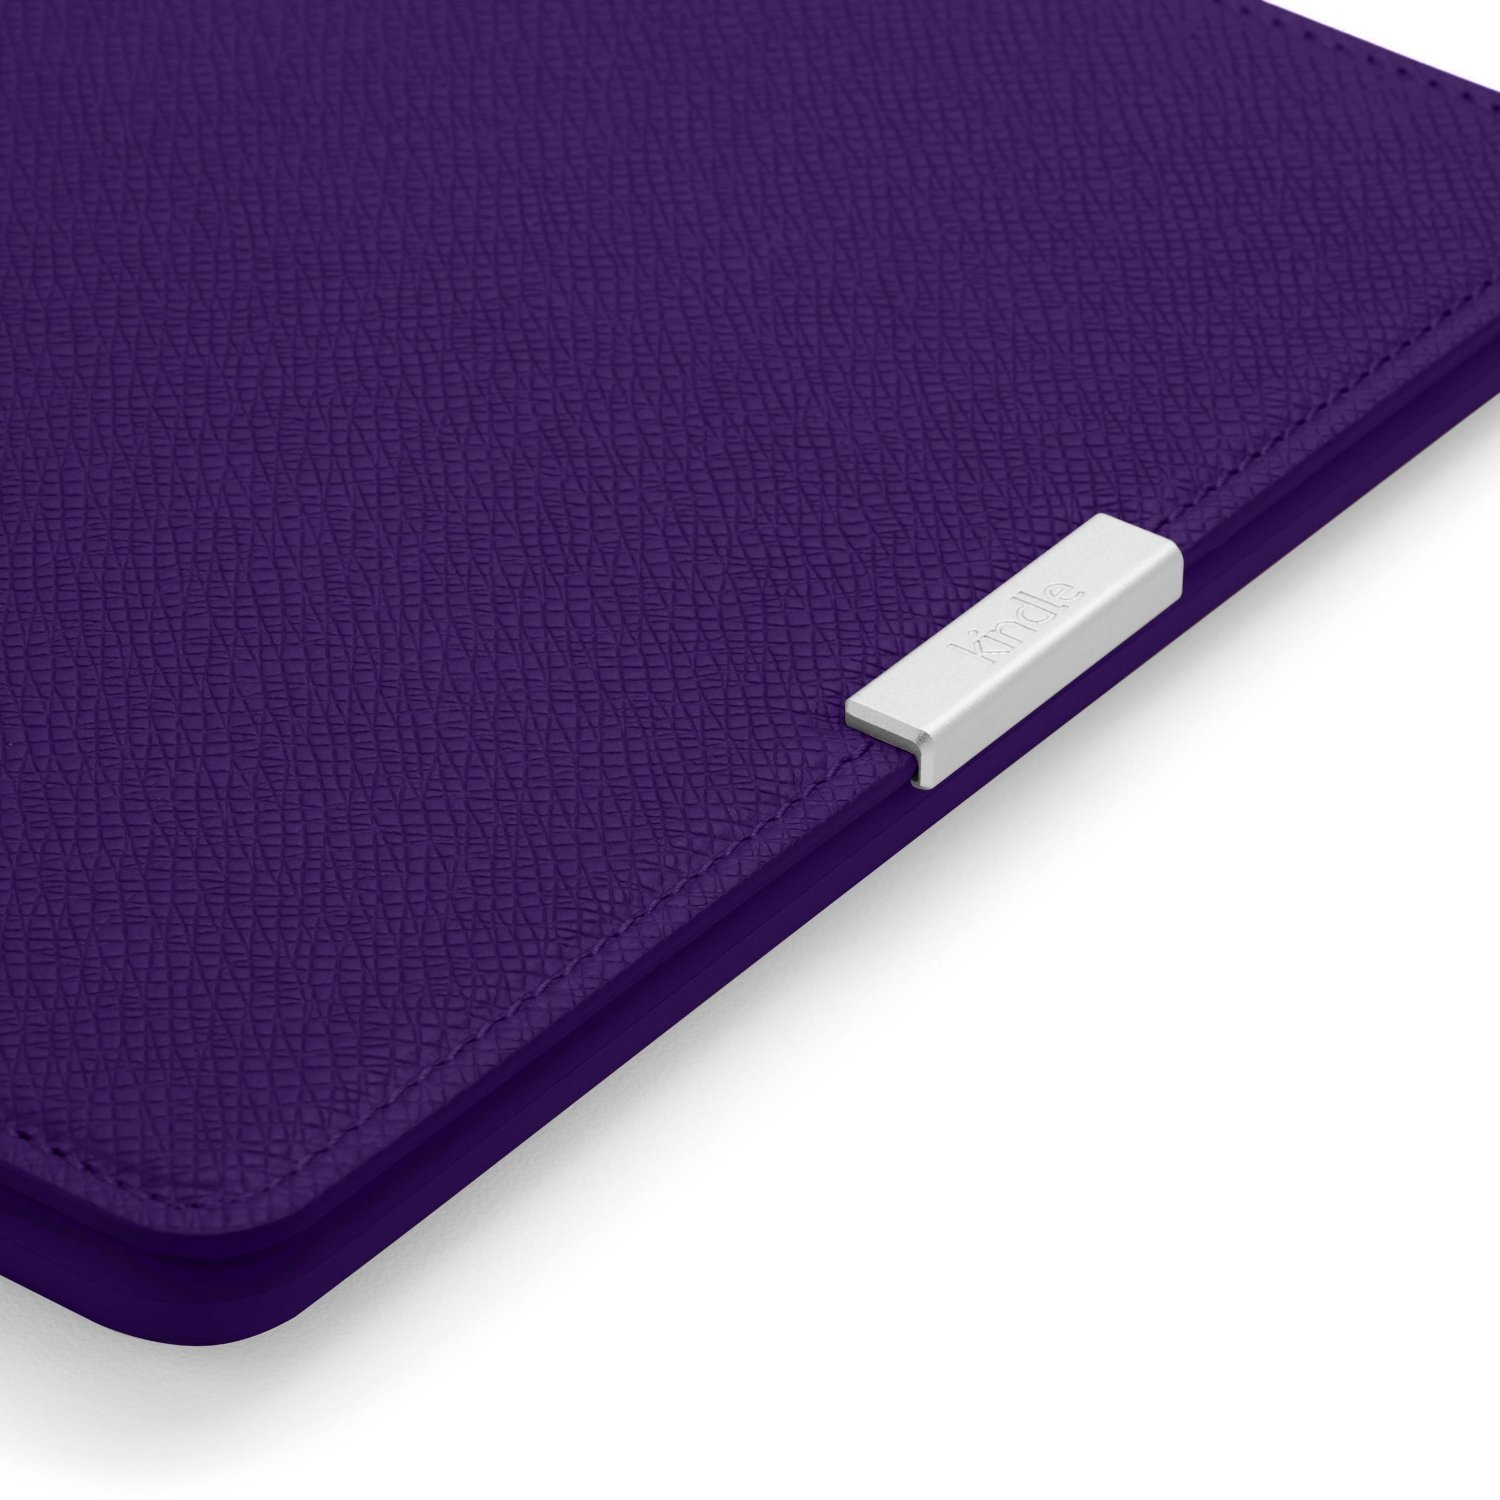 Чехол Leather Cover для Amazon Kindle Paperwhite Royal Purple (Фиолетовый). Фото N3